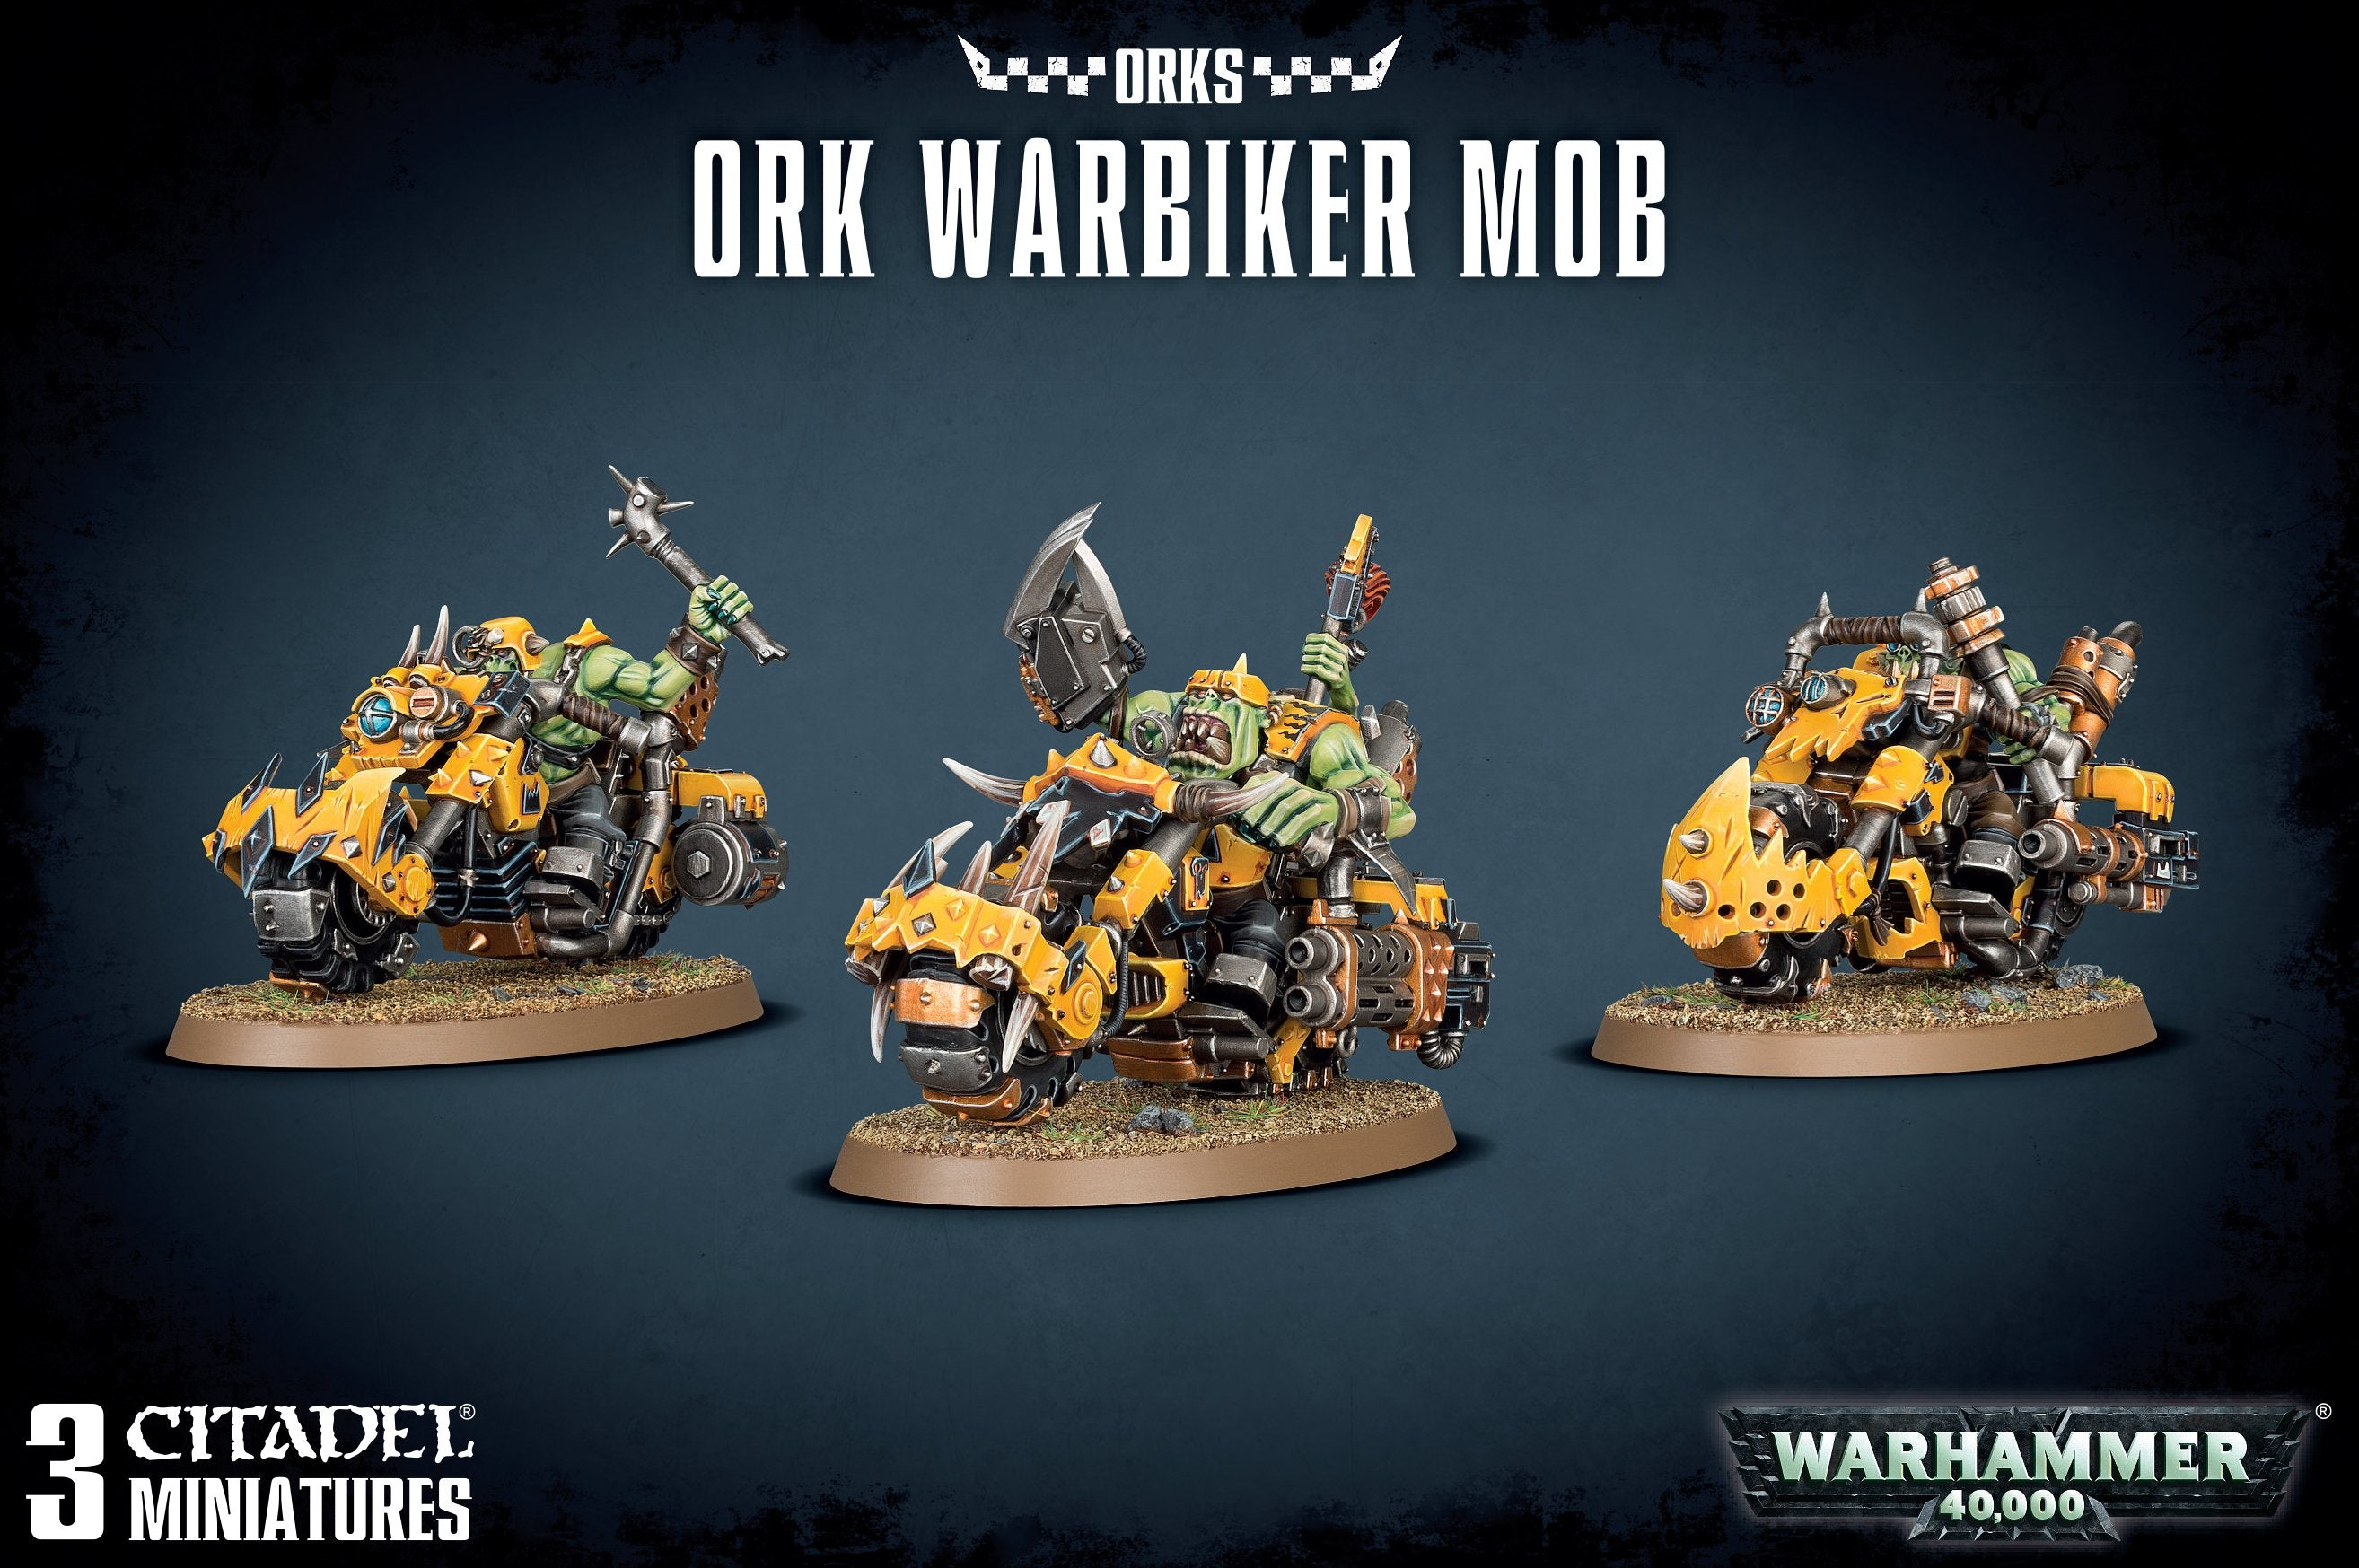 Ork Warbiker Mob | Multizone: Comics And Games